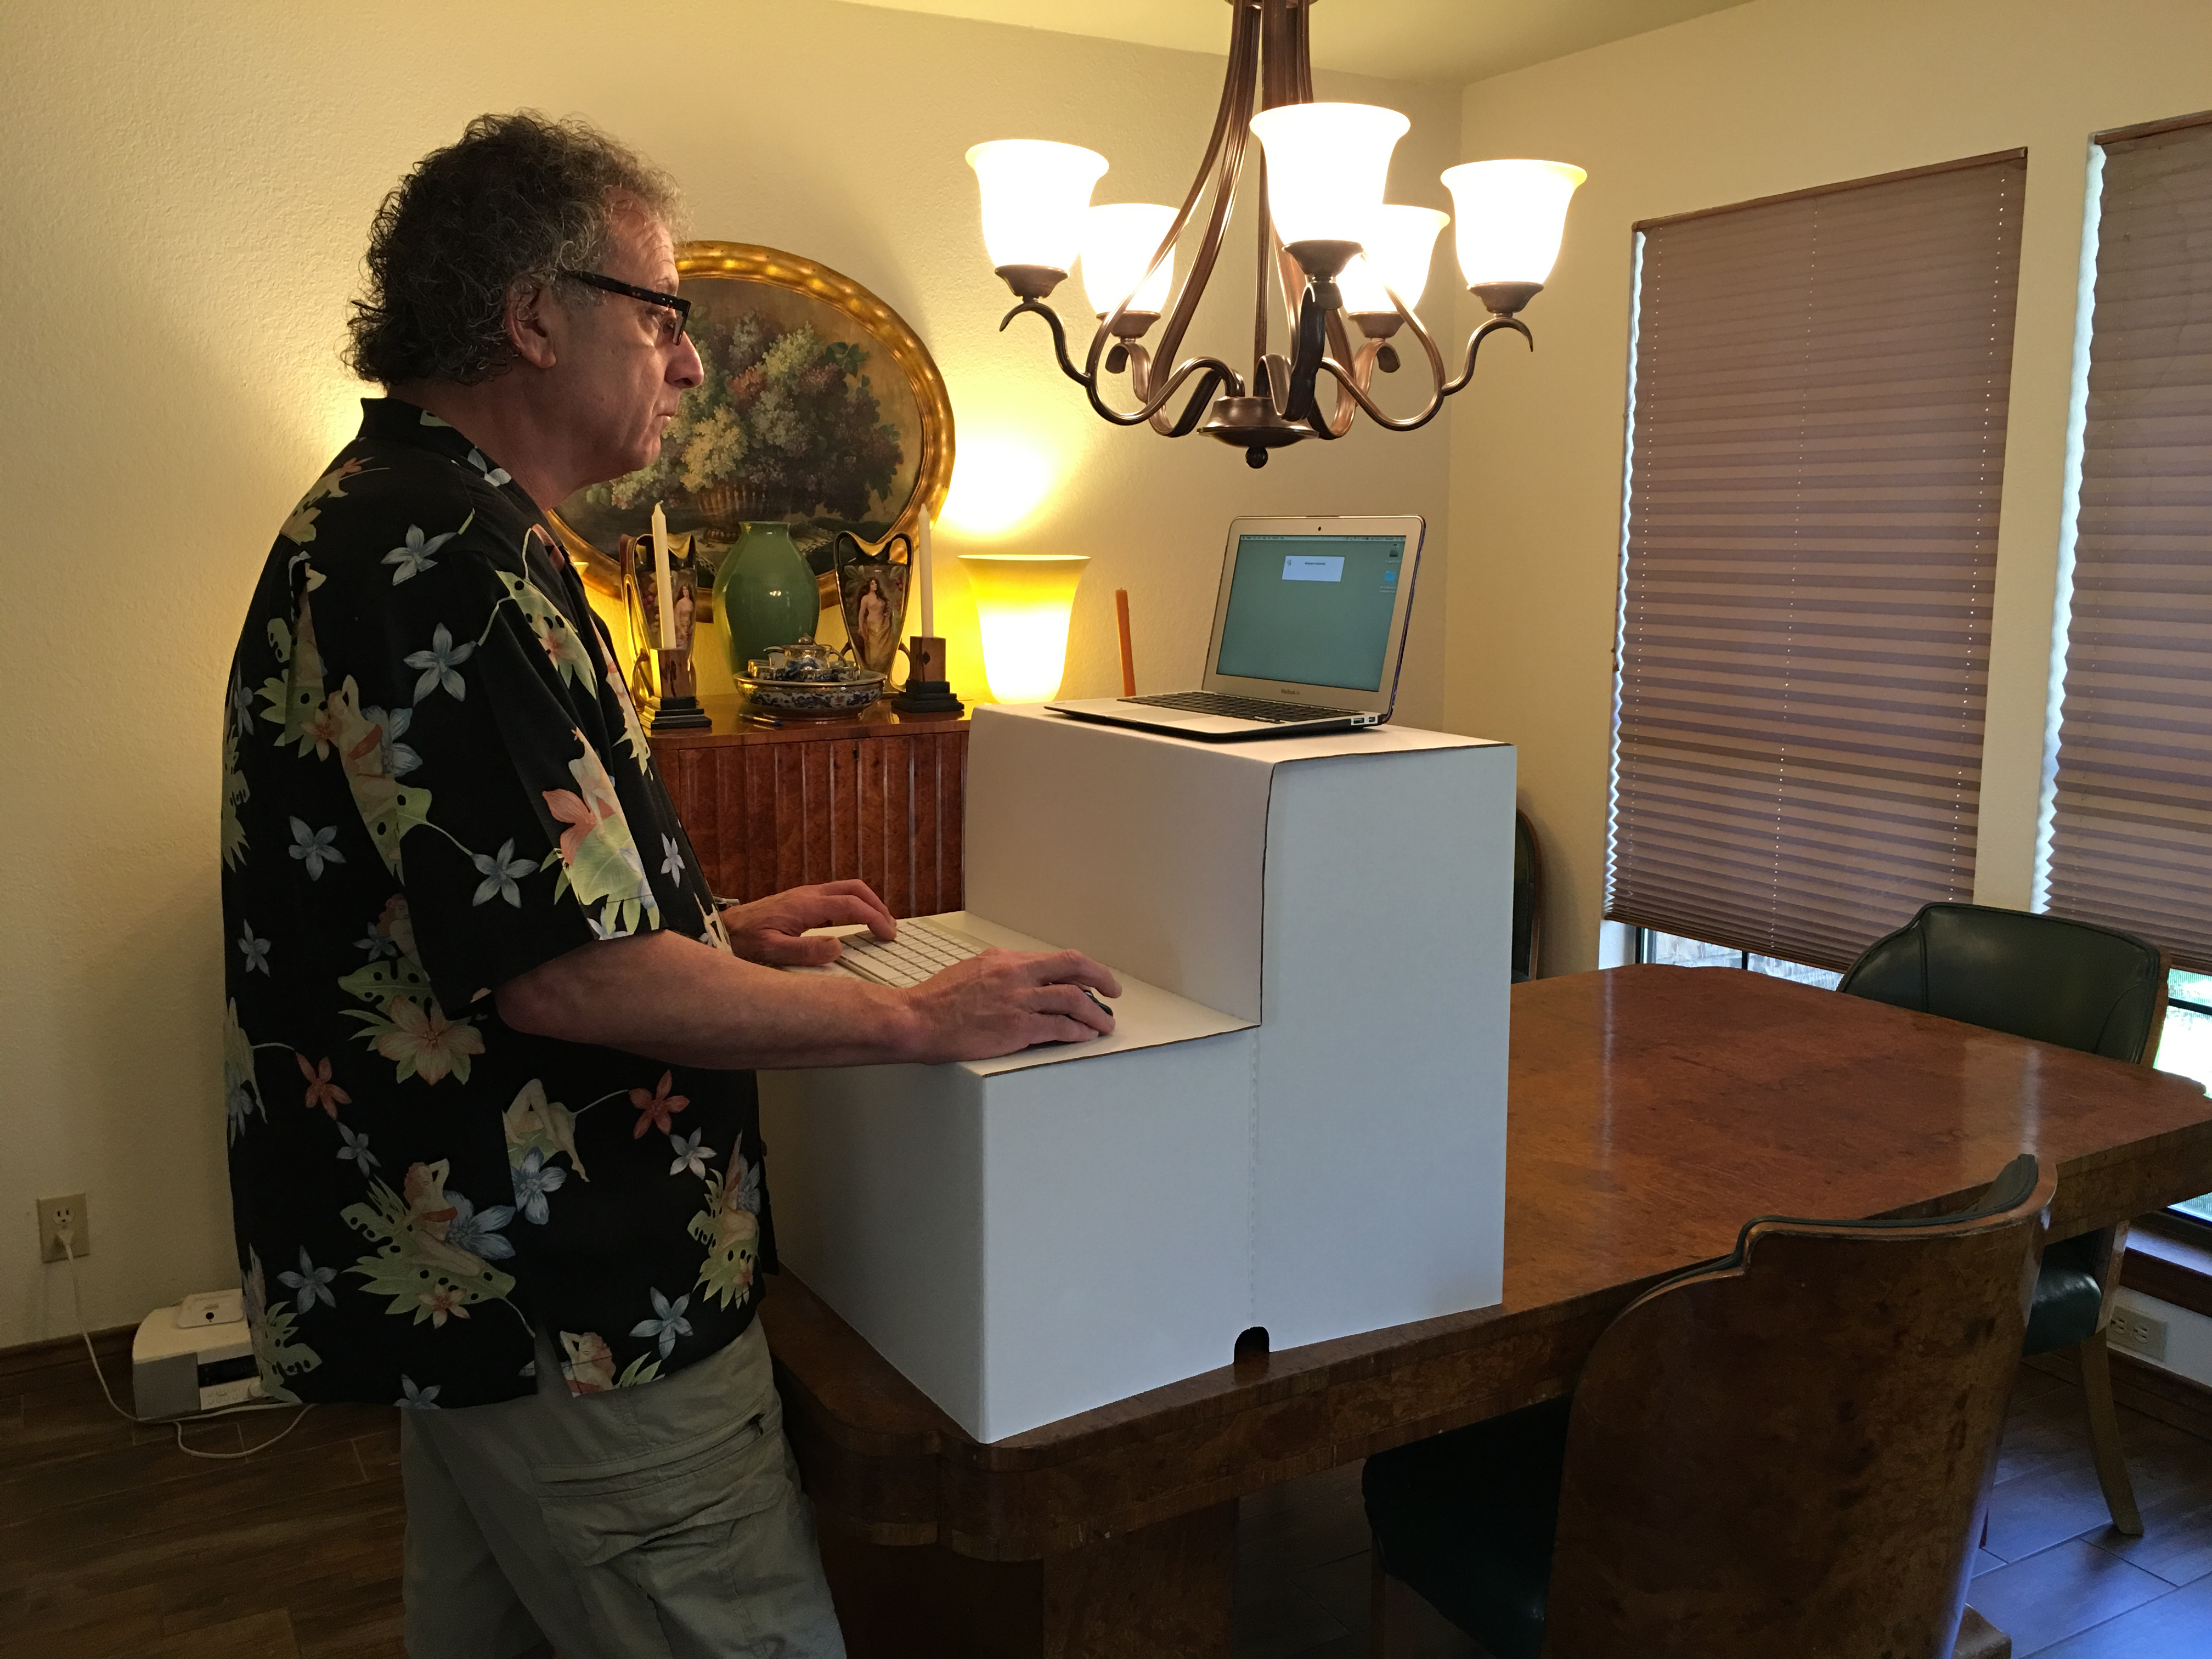 A Usable Stand Up Desk For 25 Yes The Mac Observer